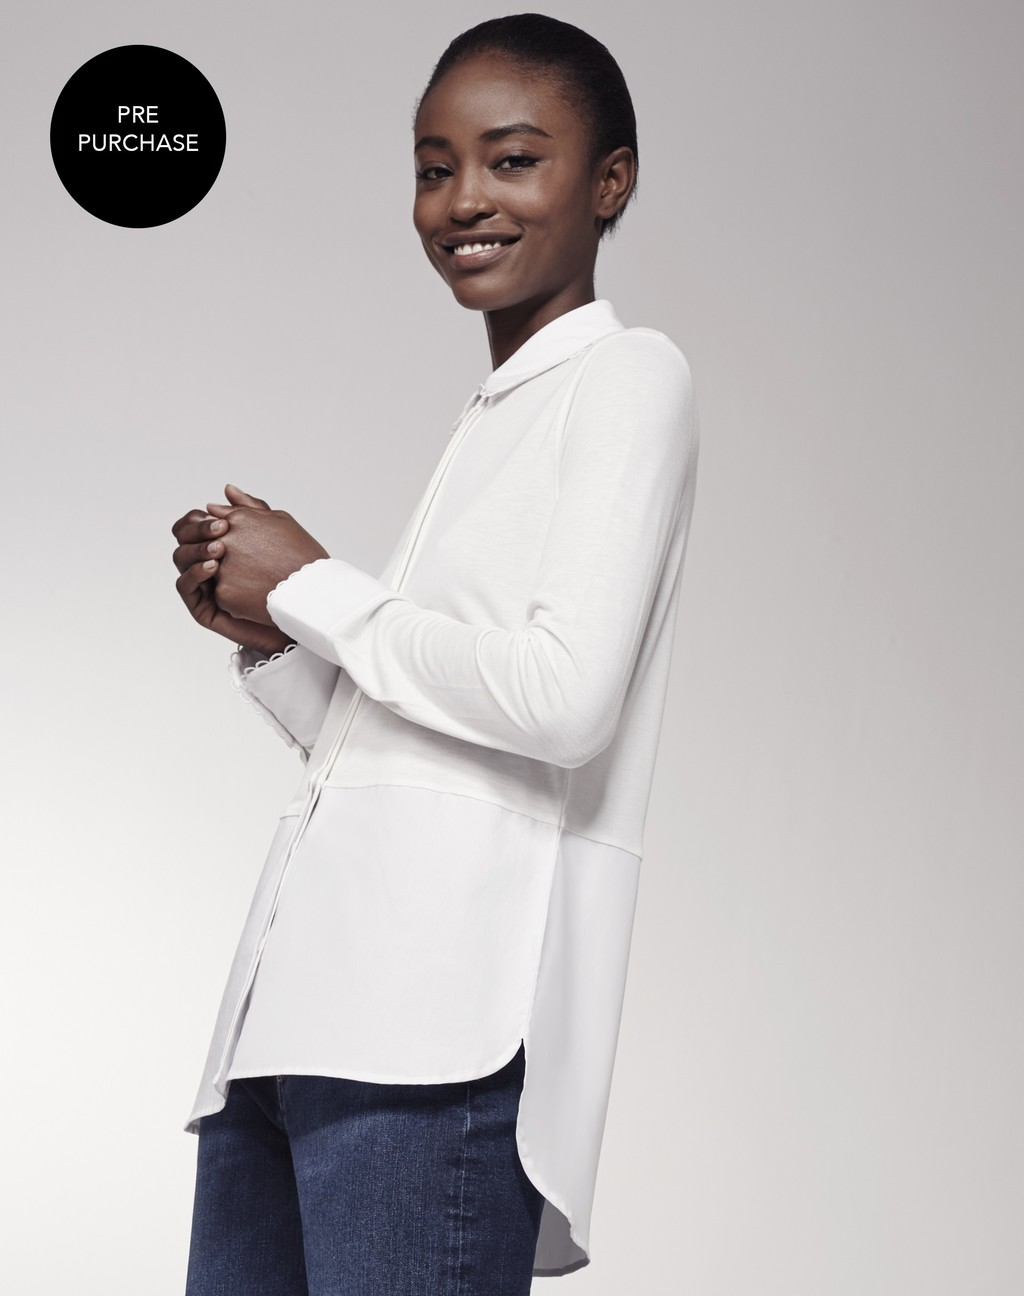 Scallop Trim Layering Shirt Soft White - neckline: shirt collar/peter pan/zip with opening; pattern: plain; style: shirt; predominant colour: ivory/cream; occasions: casual, creative work; length: standard; fibres: polyester/polyamide - 100%; fit: straight cut; sleeve length: long sleeve; sleeve style: standard; texture group: cotton feel fabrics; pattern type: fabric; season: s/s 2016; wardrobe: basic